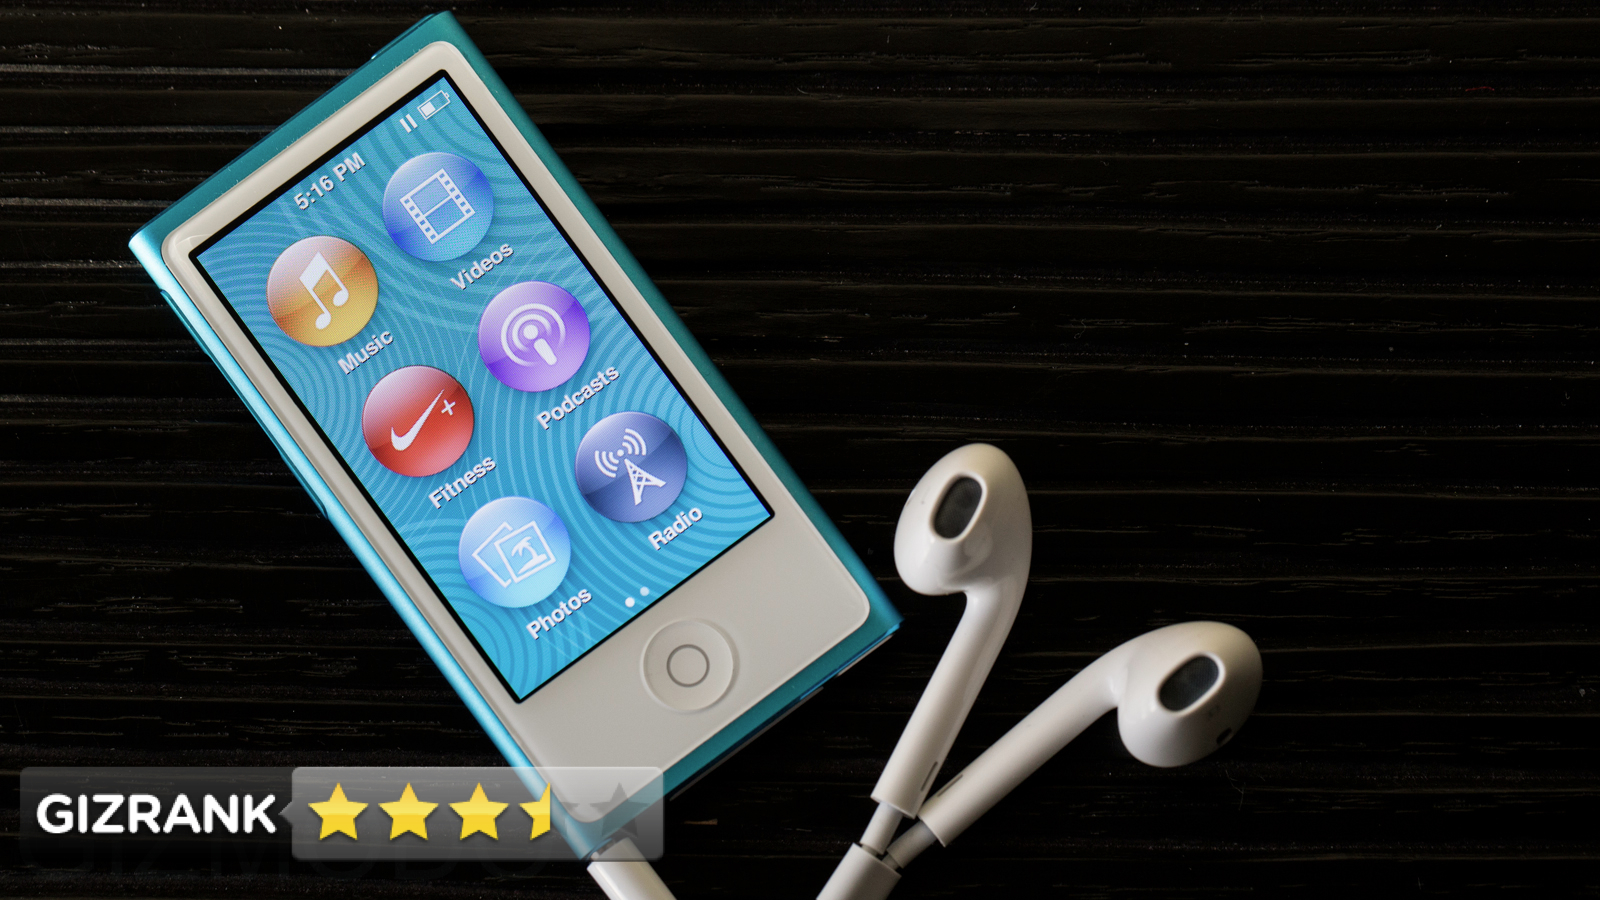 Click here to read iPod Nano Review: The Best MP3 Player Ever, For Whatever That's Worth